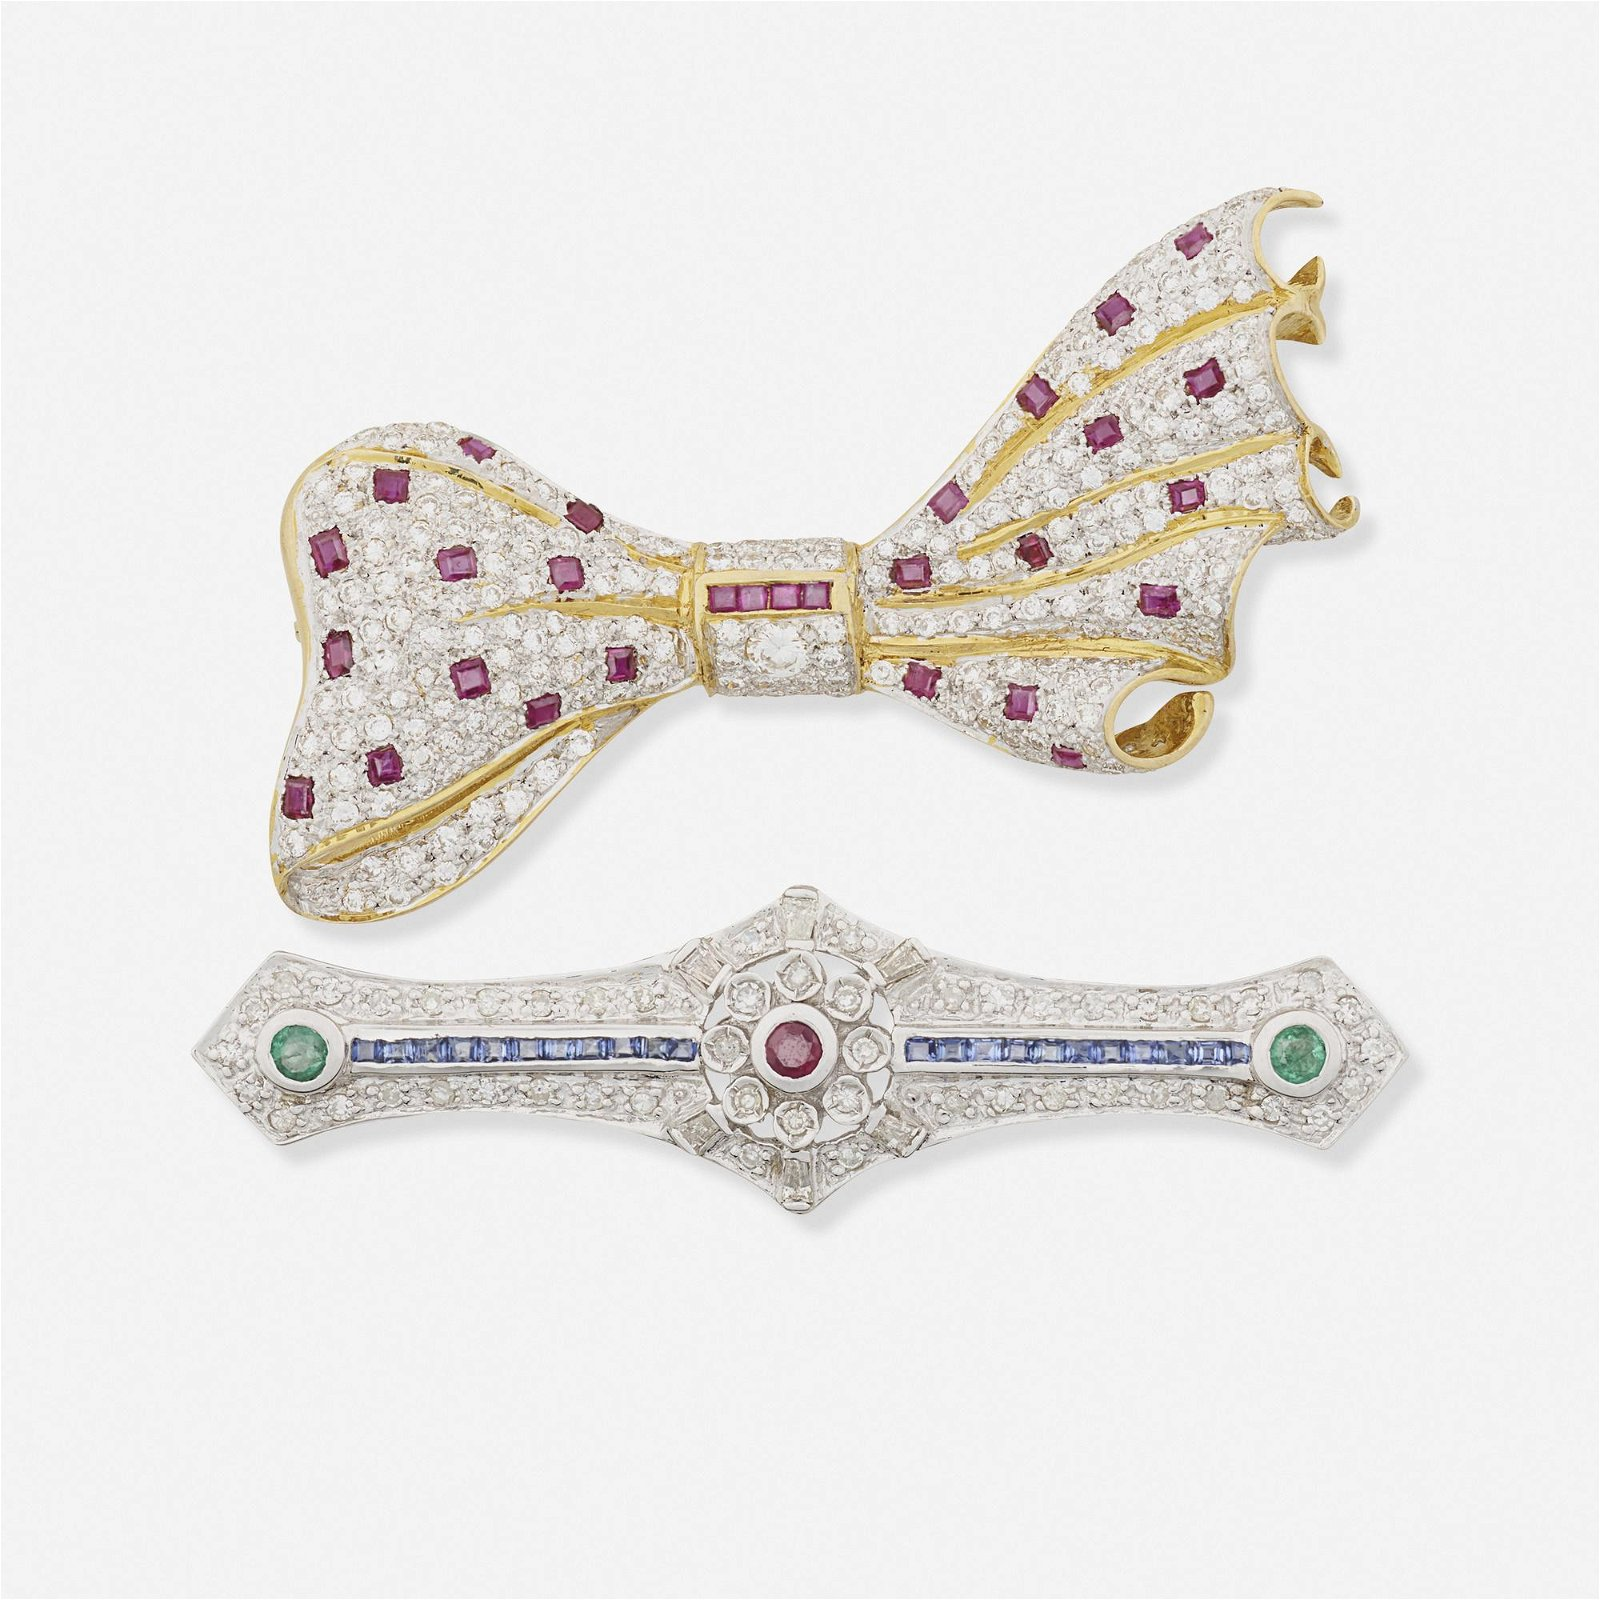 Diamond and gem-set brooches